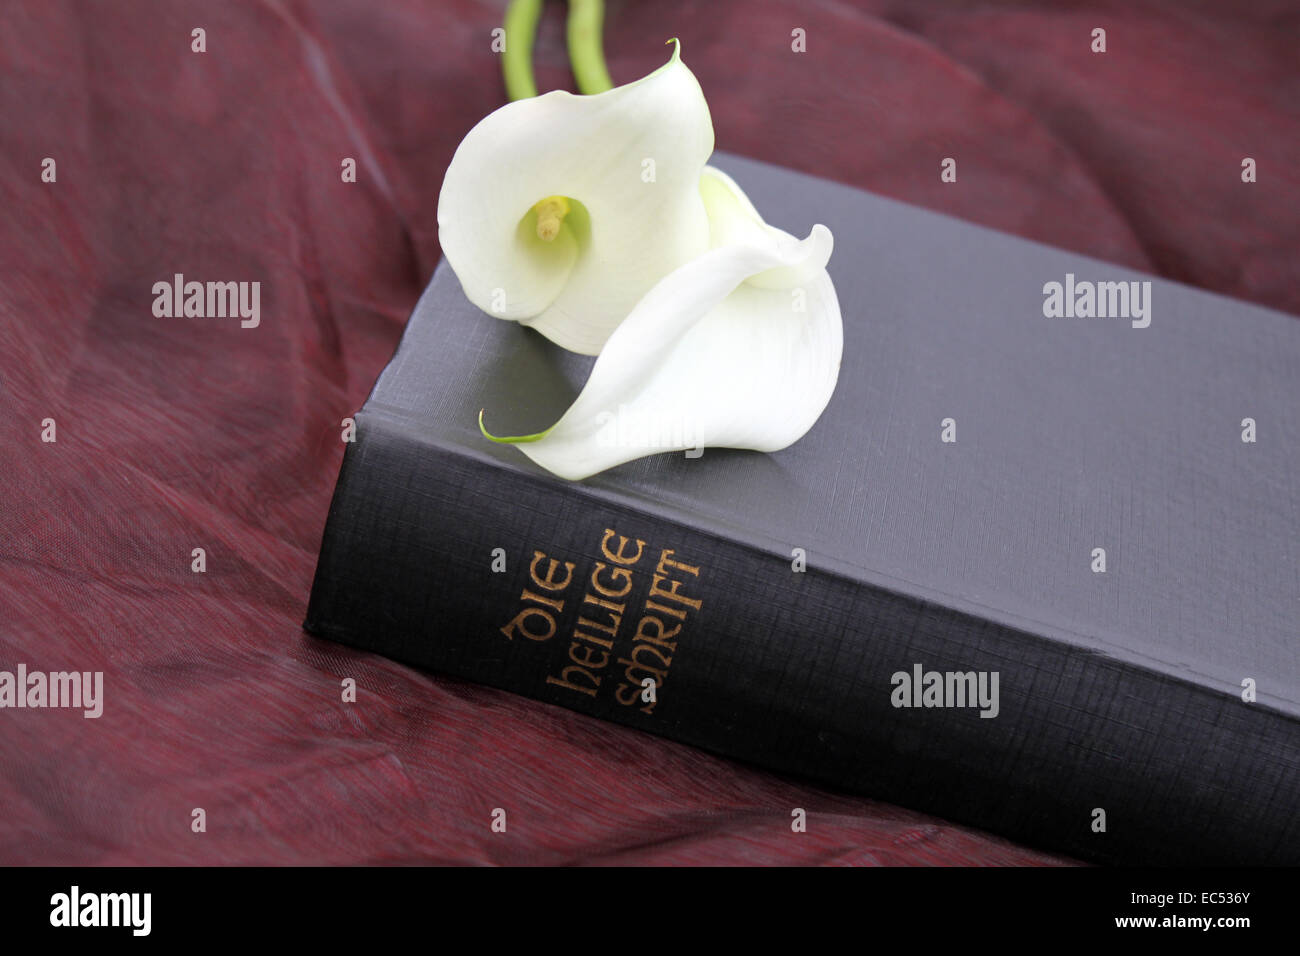 Calla flowers on the Scriptures - Stock Image